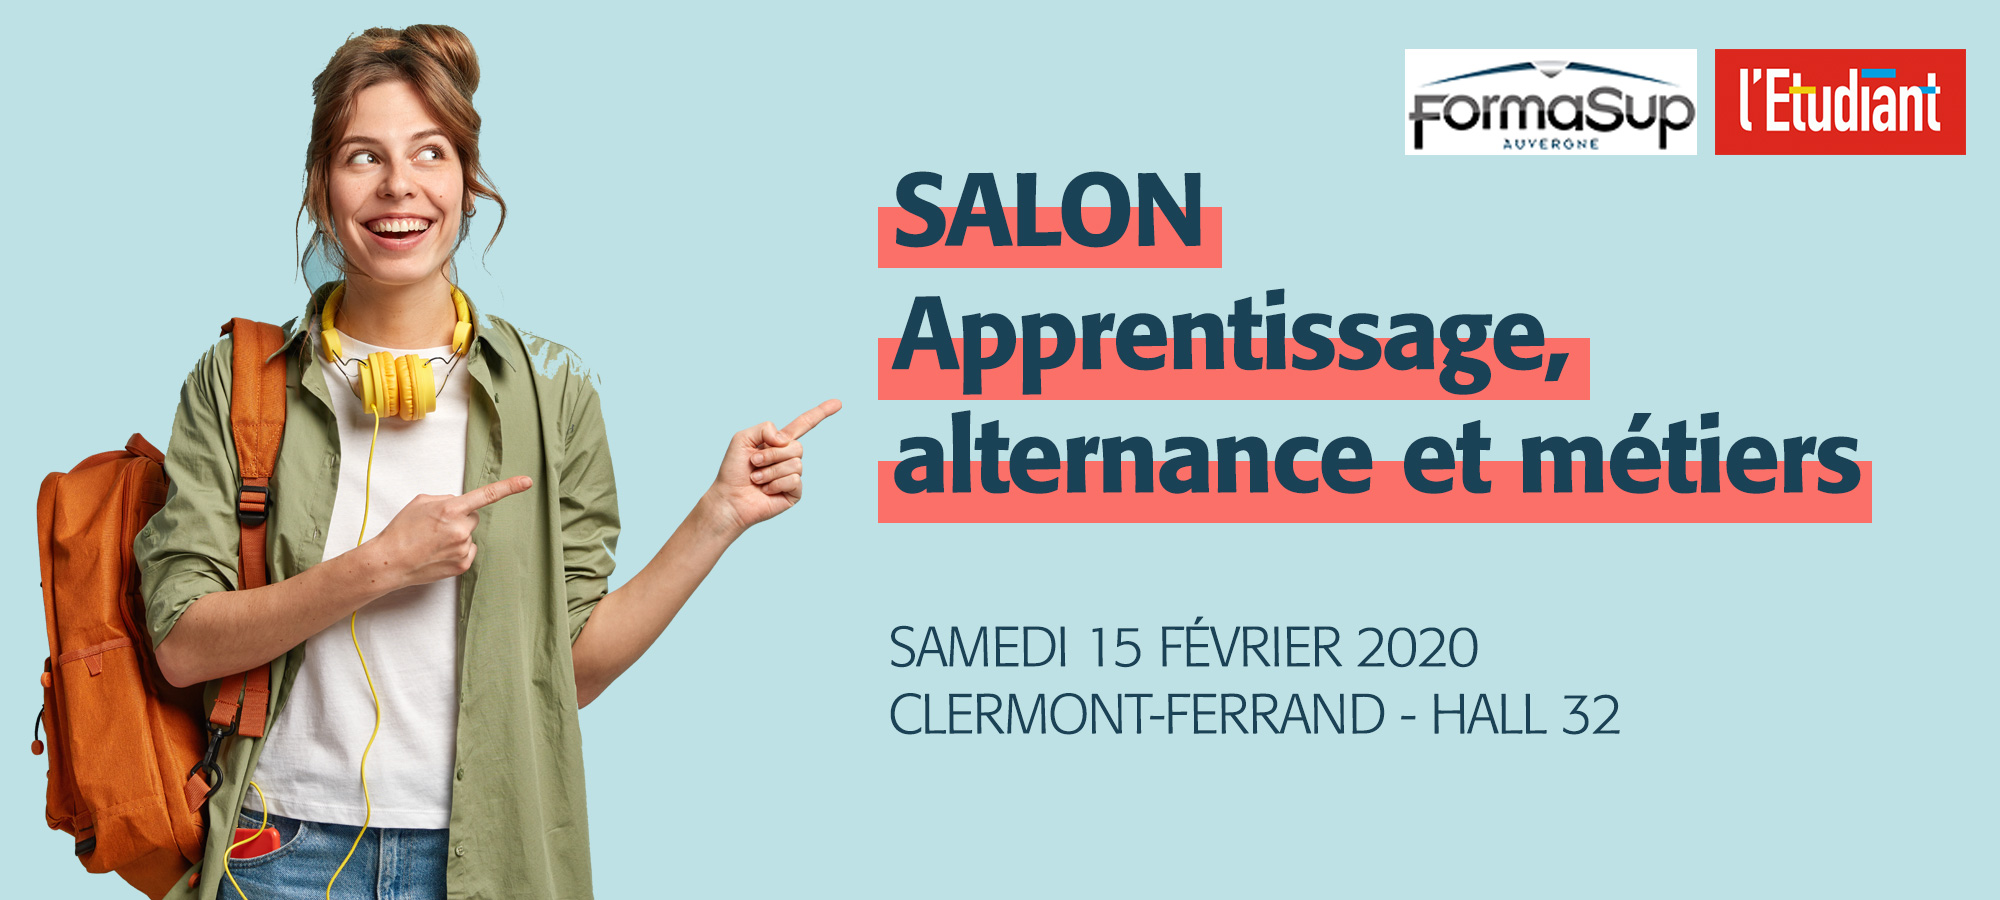 salon apprentissage alternance metiers clermont ferrand hall 32